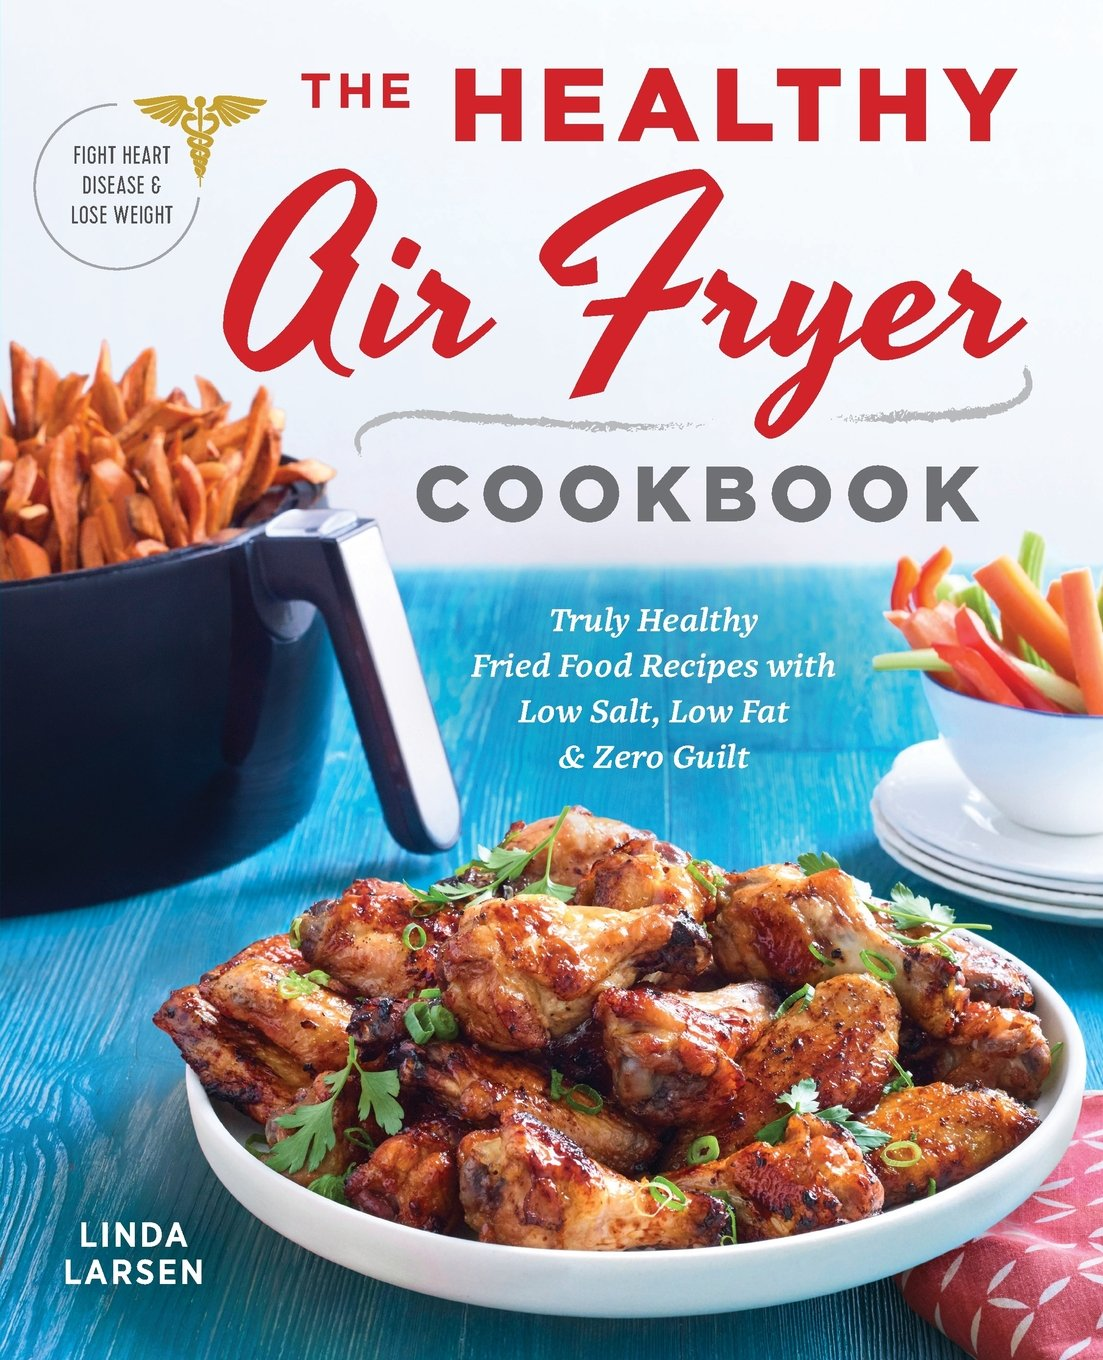 The healthy air fryer cookbook truly healthy fried food recipes the healthy air fryer cookbook truly healthy fried food recipes with low salt low fat and zero guilt linda larsen 9781939754165 amazon books forumfinder Image collections